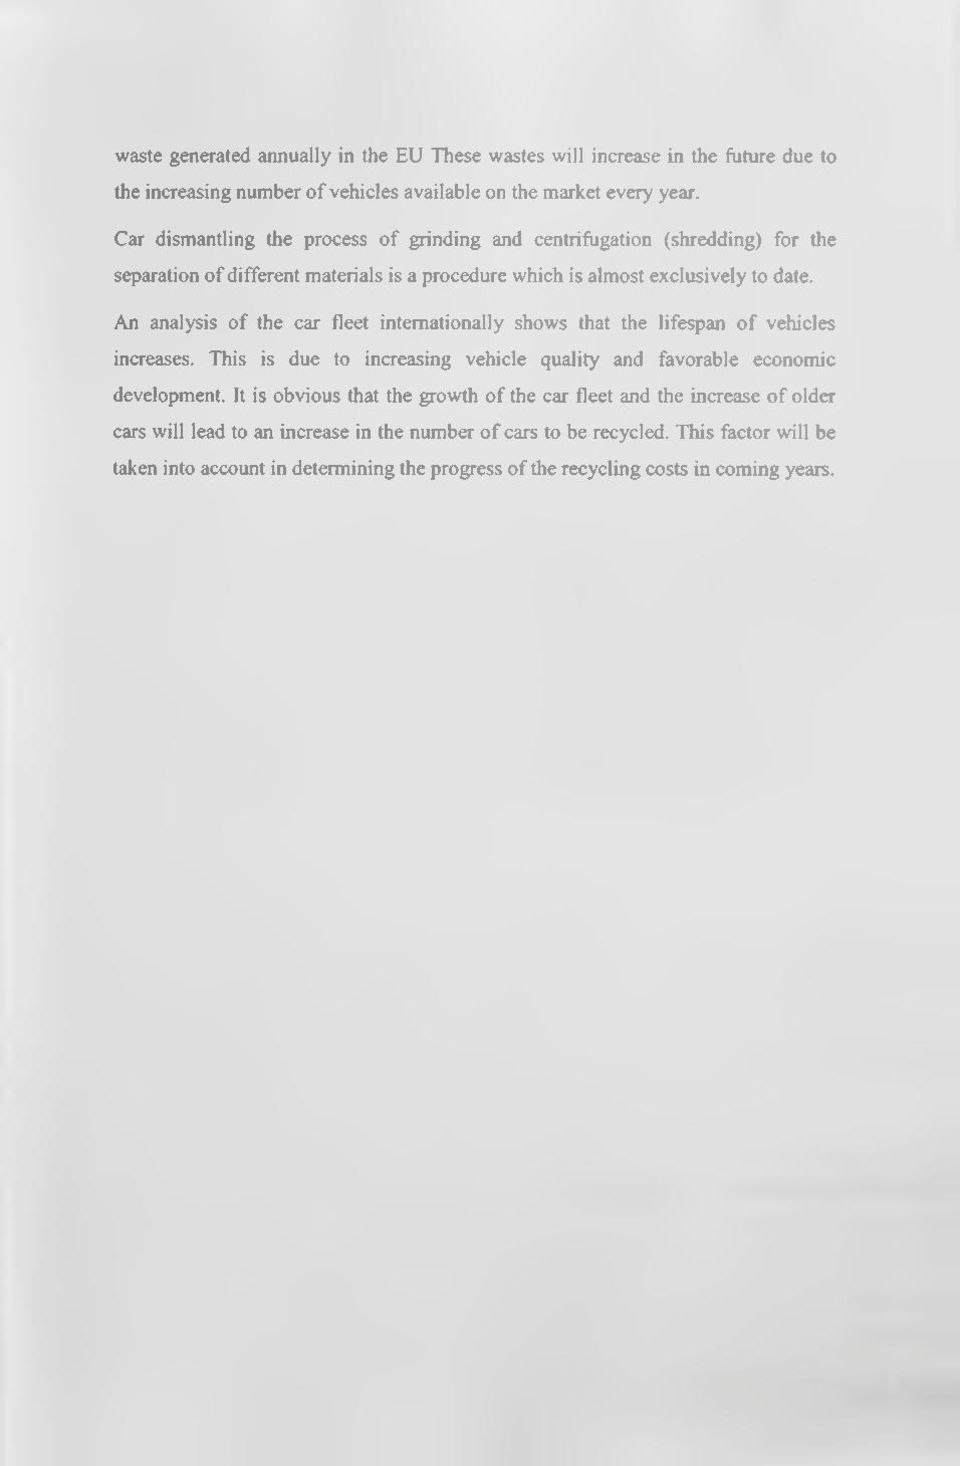 An analysis of the car fleet internationally shows that the lifespan of vehicles increases. This is due to increasing vehicle quality and favorable economic development.